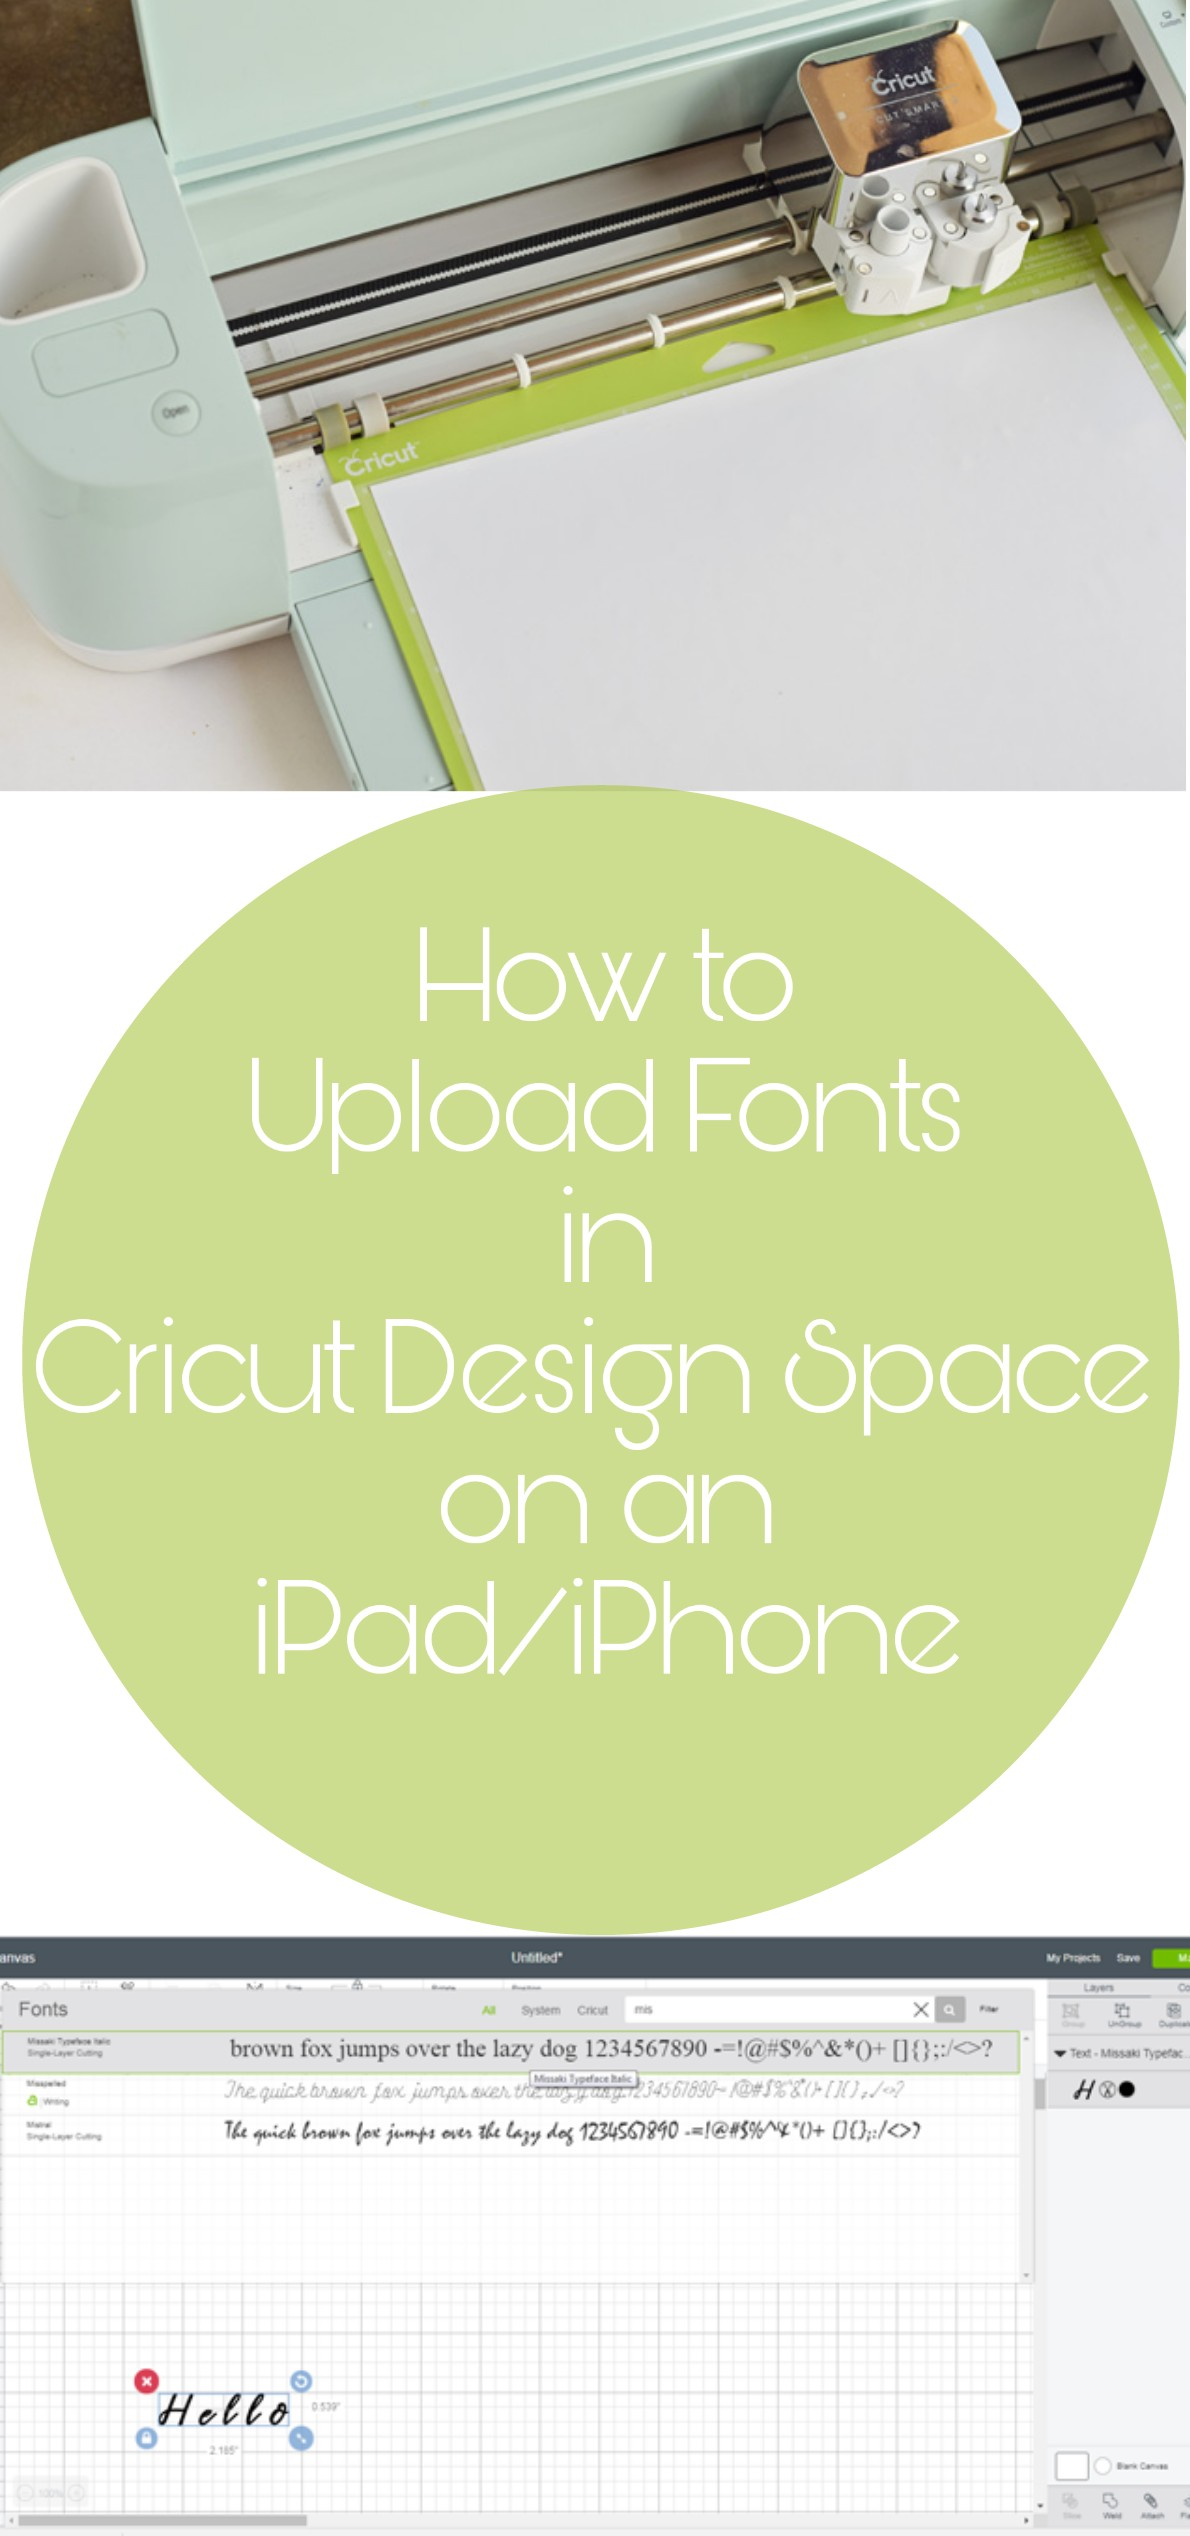 How to Upload Fonts into Cricut Design Space on an iPad or